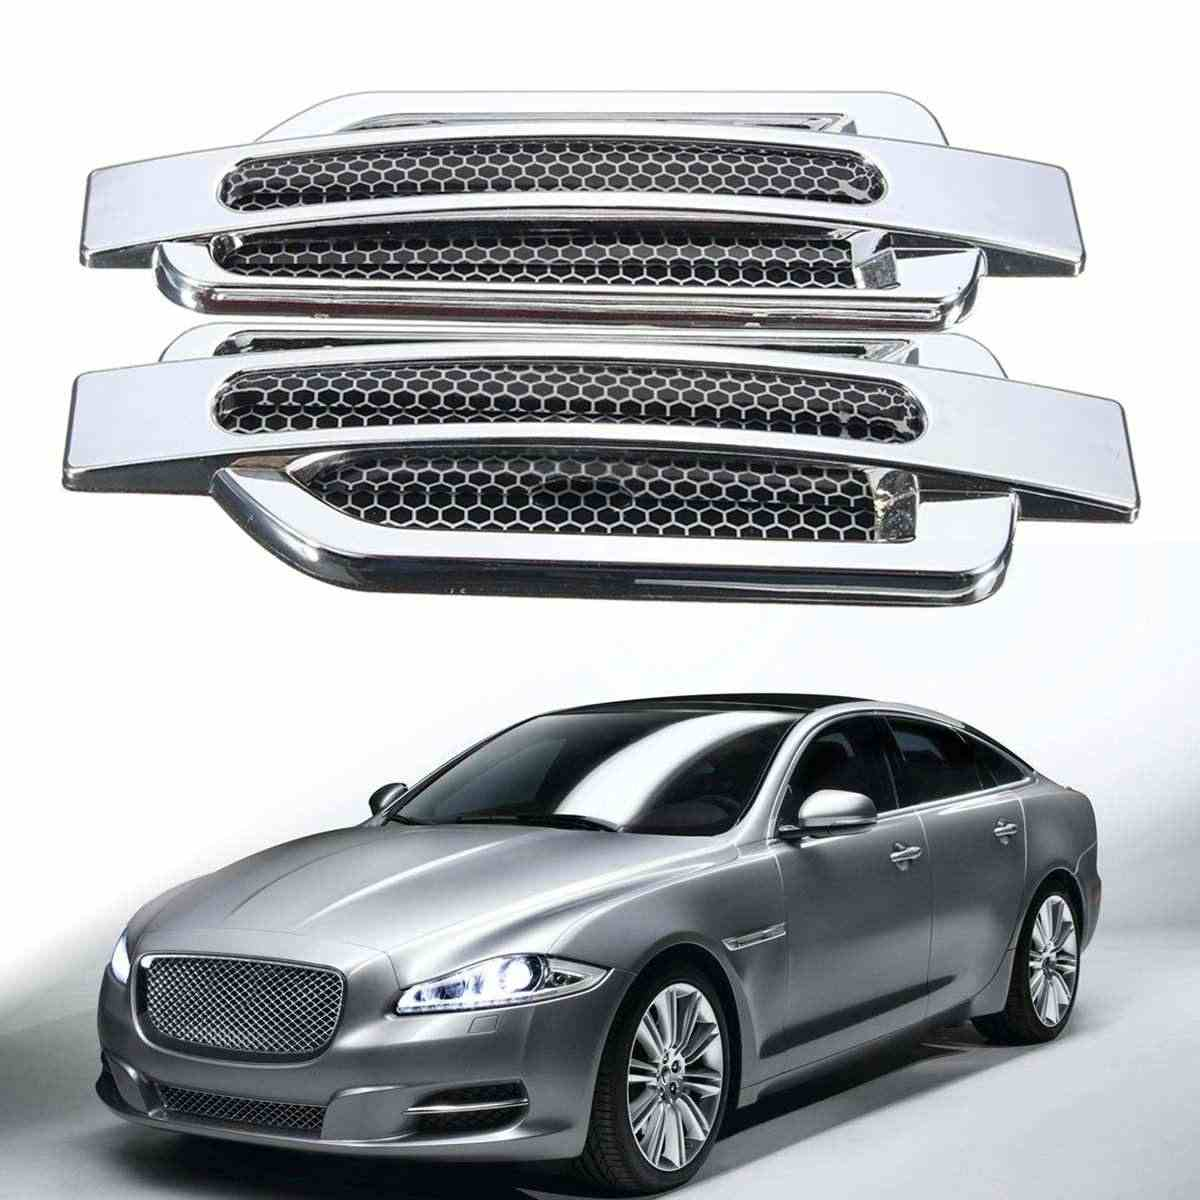 Universal Pair Car Side Air Flow Vent Cover Intake Decoration Stickers Side Mesh Cover Hood Bonnet Car Styling